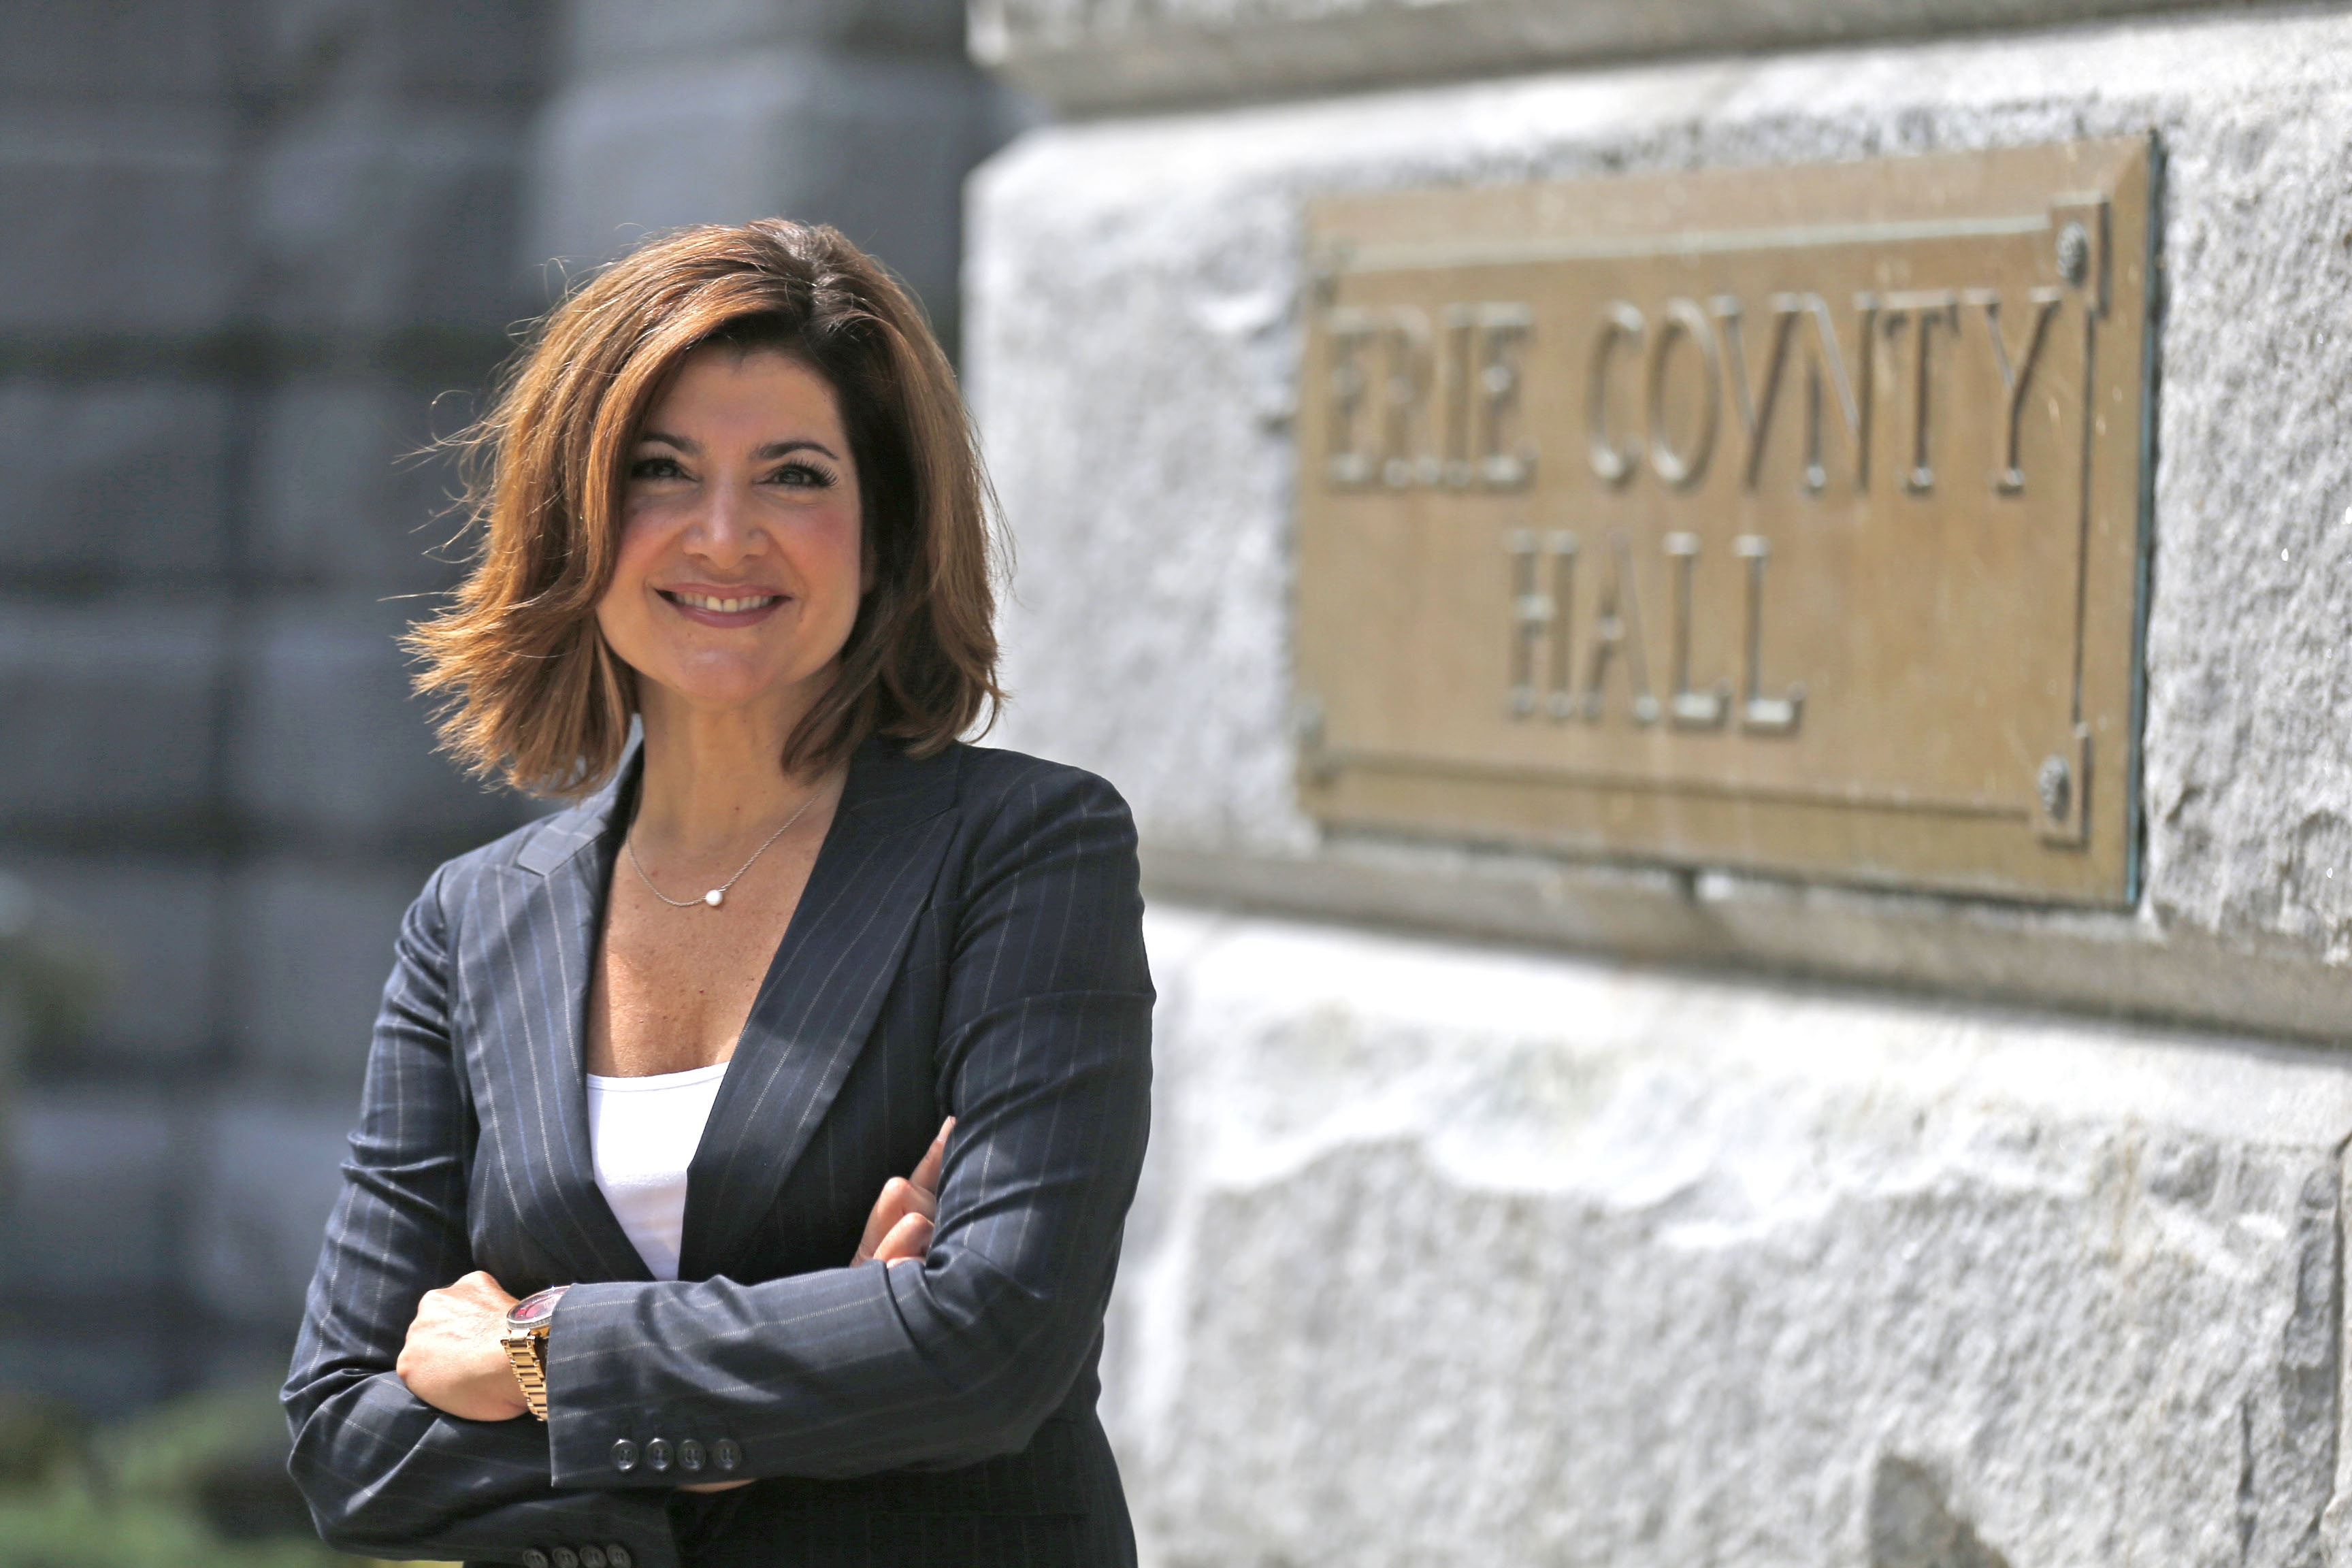 Former Channel 7 news anchor Joanna Pasceri now the public information officer for Erie County District Attorney Michael Flaherty. After 22 years in the WKBW-TV newsroom, she is adjusting nicely to the change of pace.